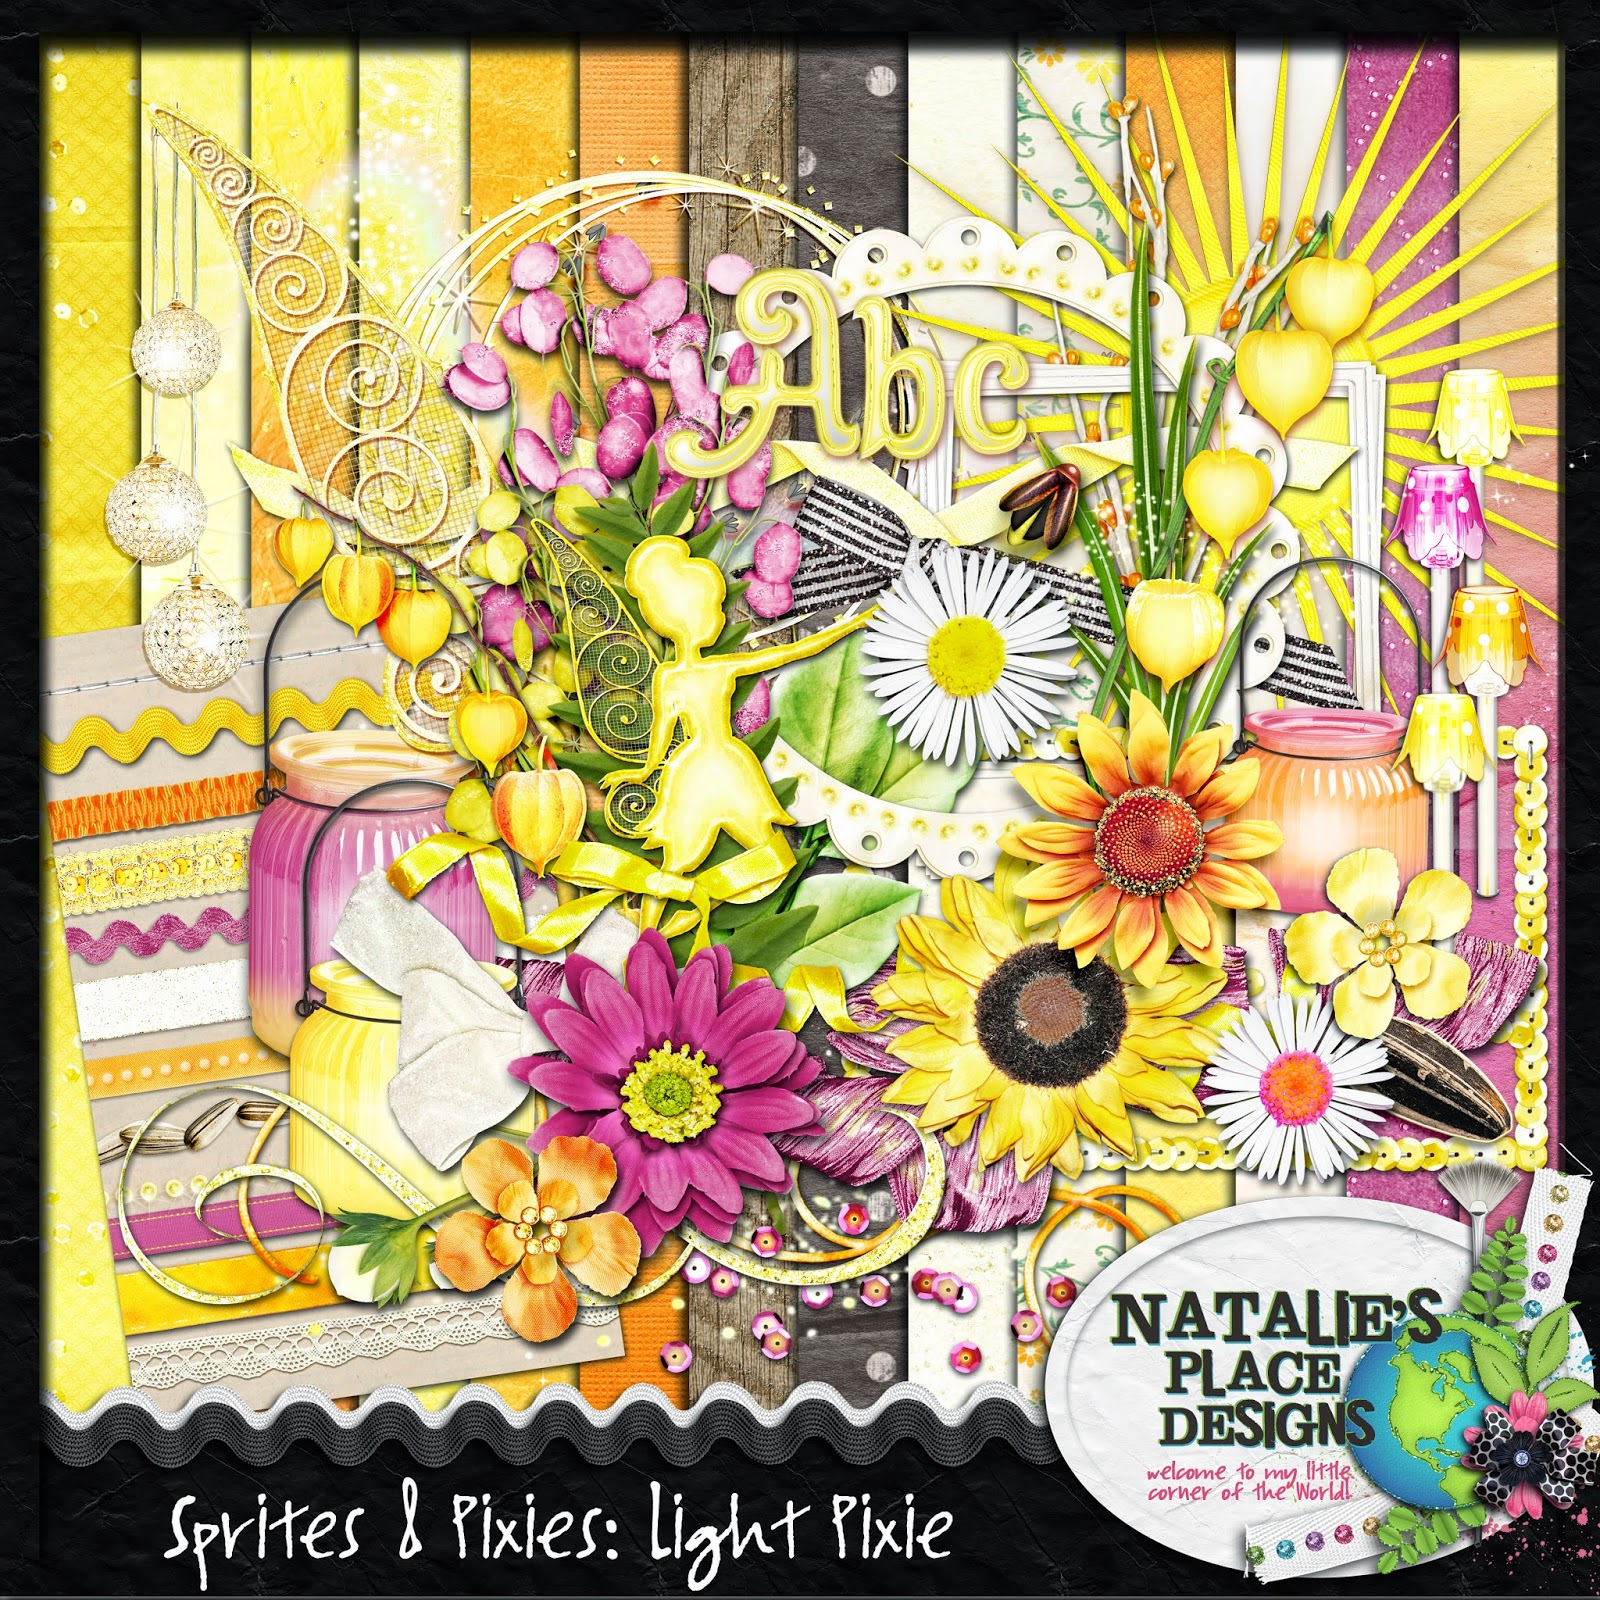 http://www.nataliesplacedesigns.com/store/p484/Sprites_%26_Pixies%3A_Light_Pixie.html